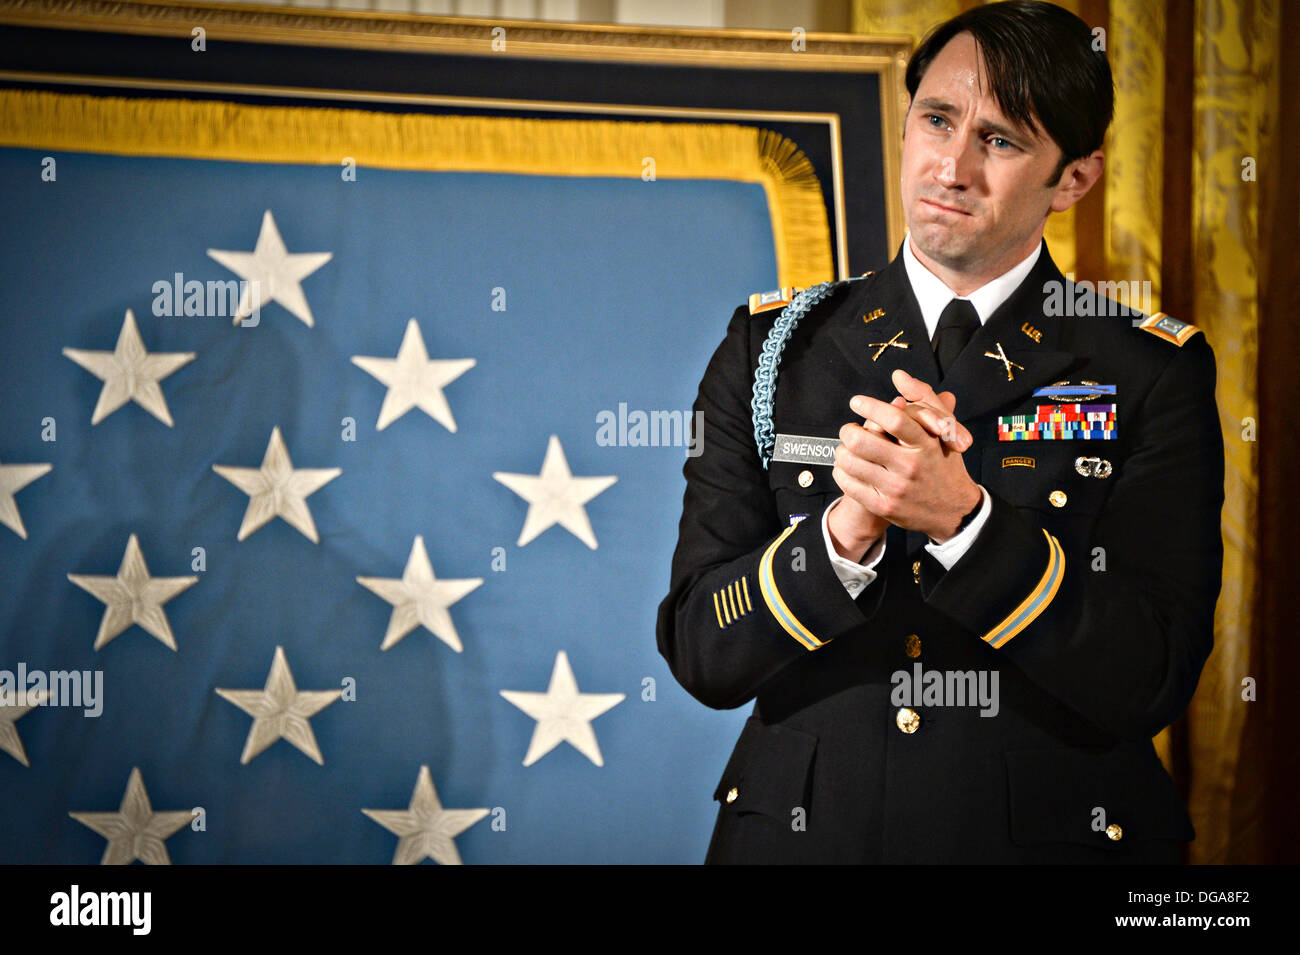 US Army Capt. William D. Swenson during the Medal of Honor ceremony in the East Room of the White House October 15, 2013 in Washington, DC. The Medal of Honor is the nation's highest military honor. - Stock Image